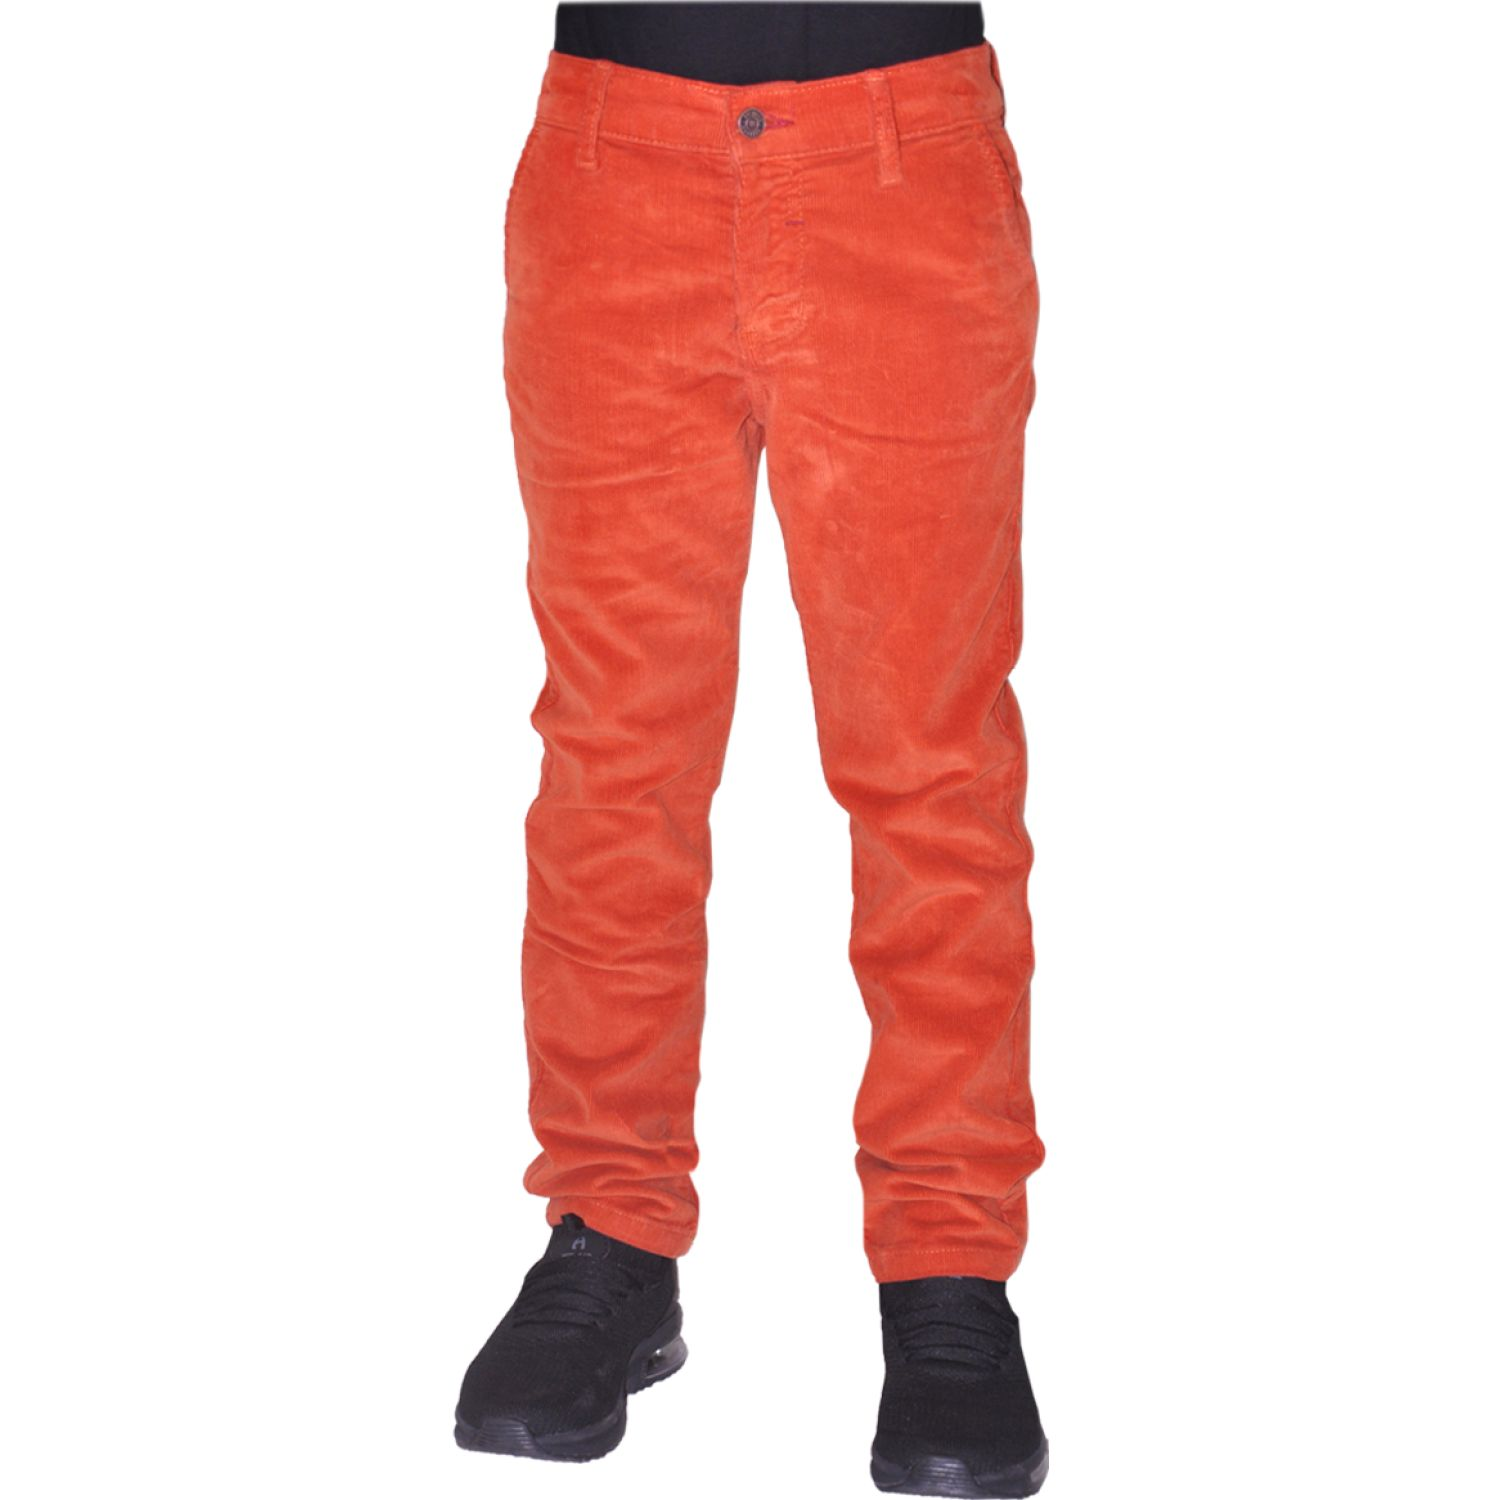 COTTONS JEANS Agapito Ladrillo Pantalones